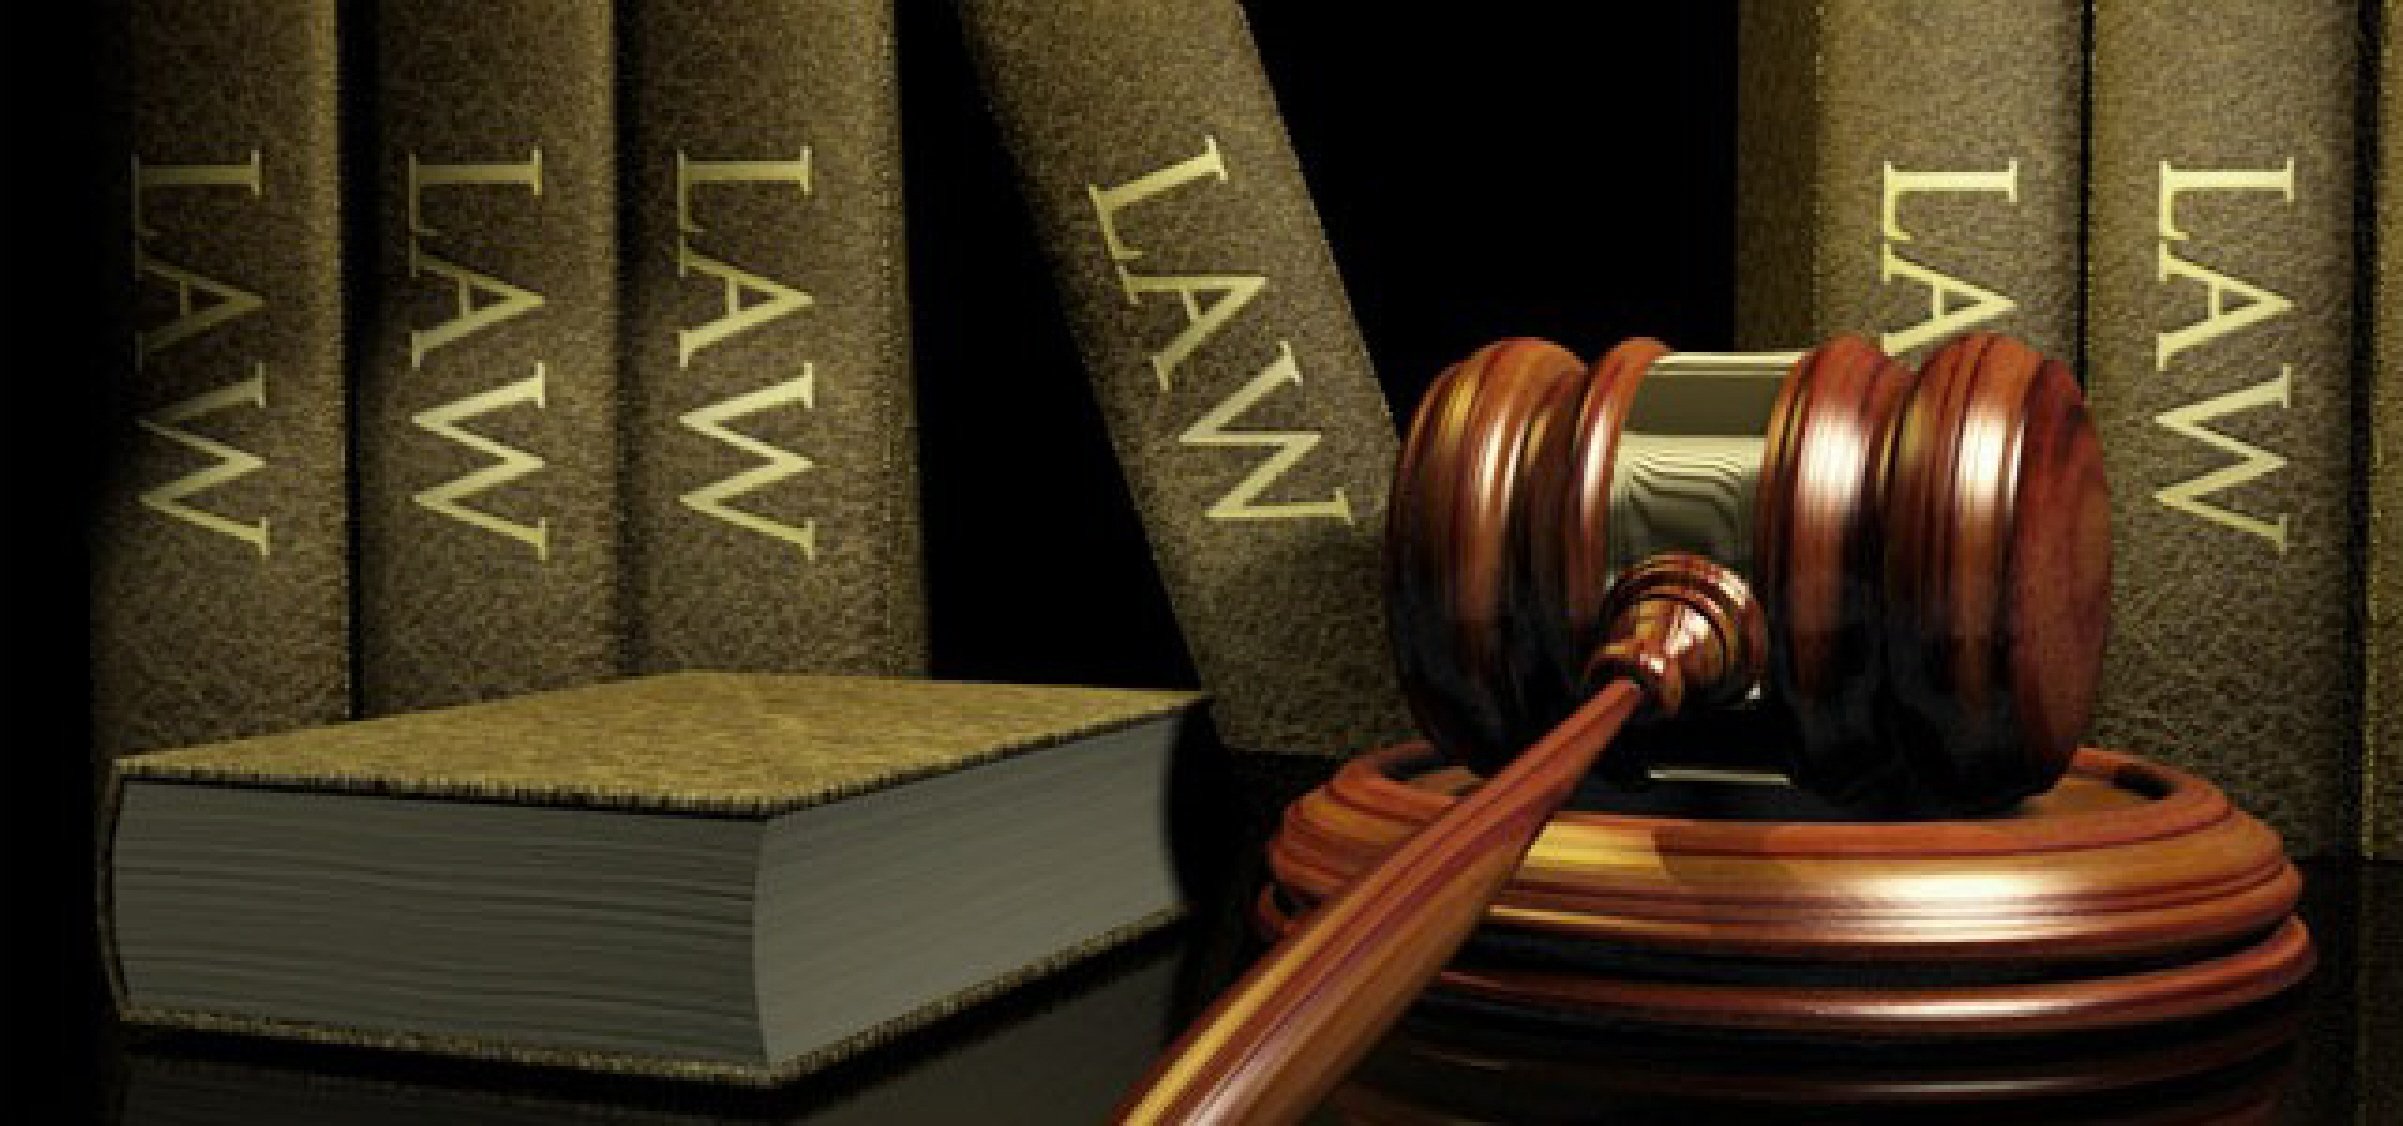 need legal resources around lincoln lancaster county nebraska